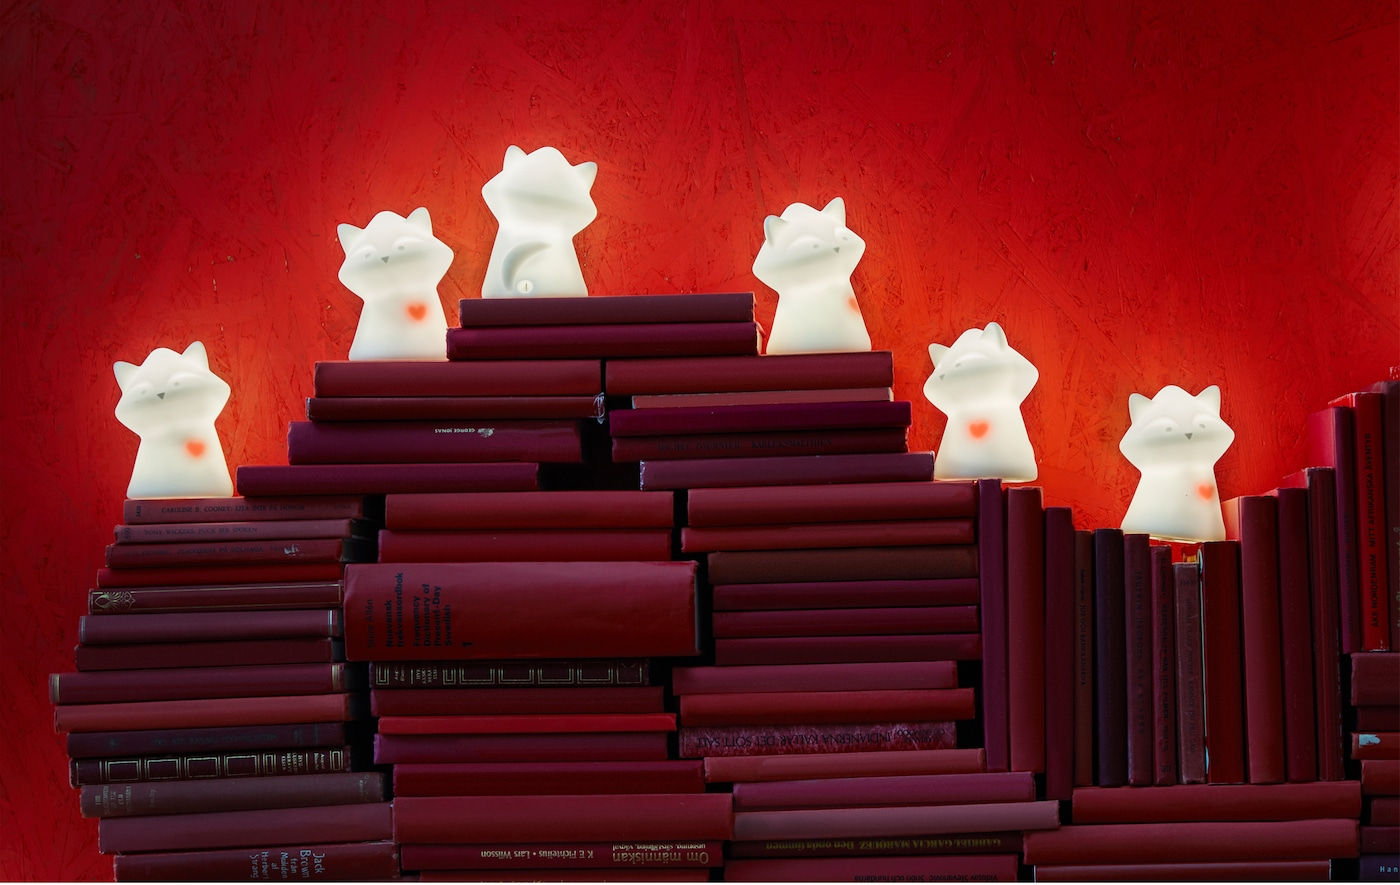 A night light like LURIGA raccoon from IKEA can scare off monsters and radiate security. It has a pulsating red heart, too, which makes it a sweet way to show someone you love them. You can stack red books like a heart and put lots of LURIGA on top.